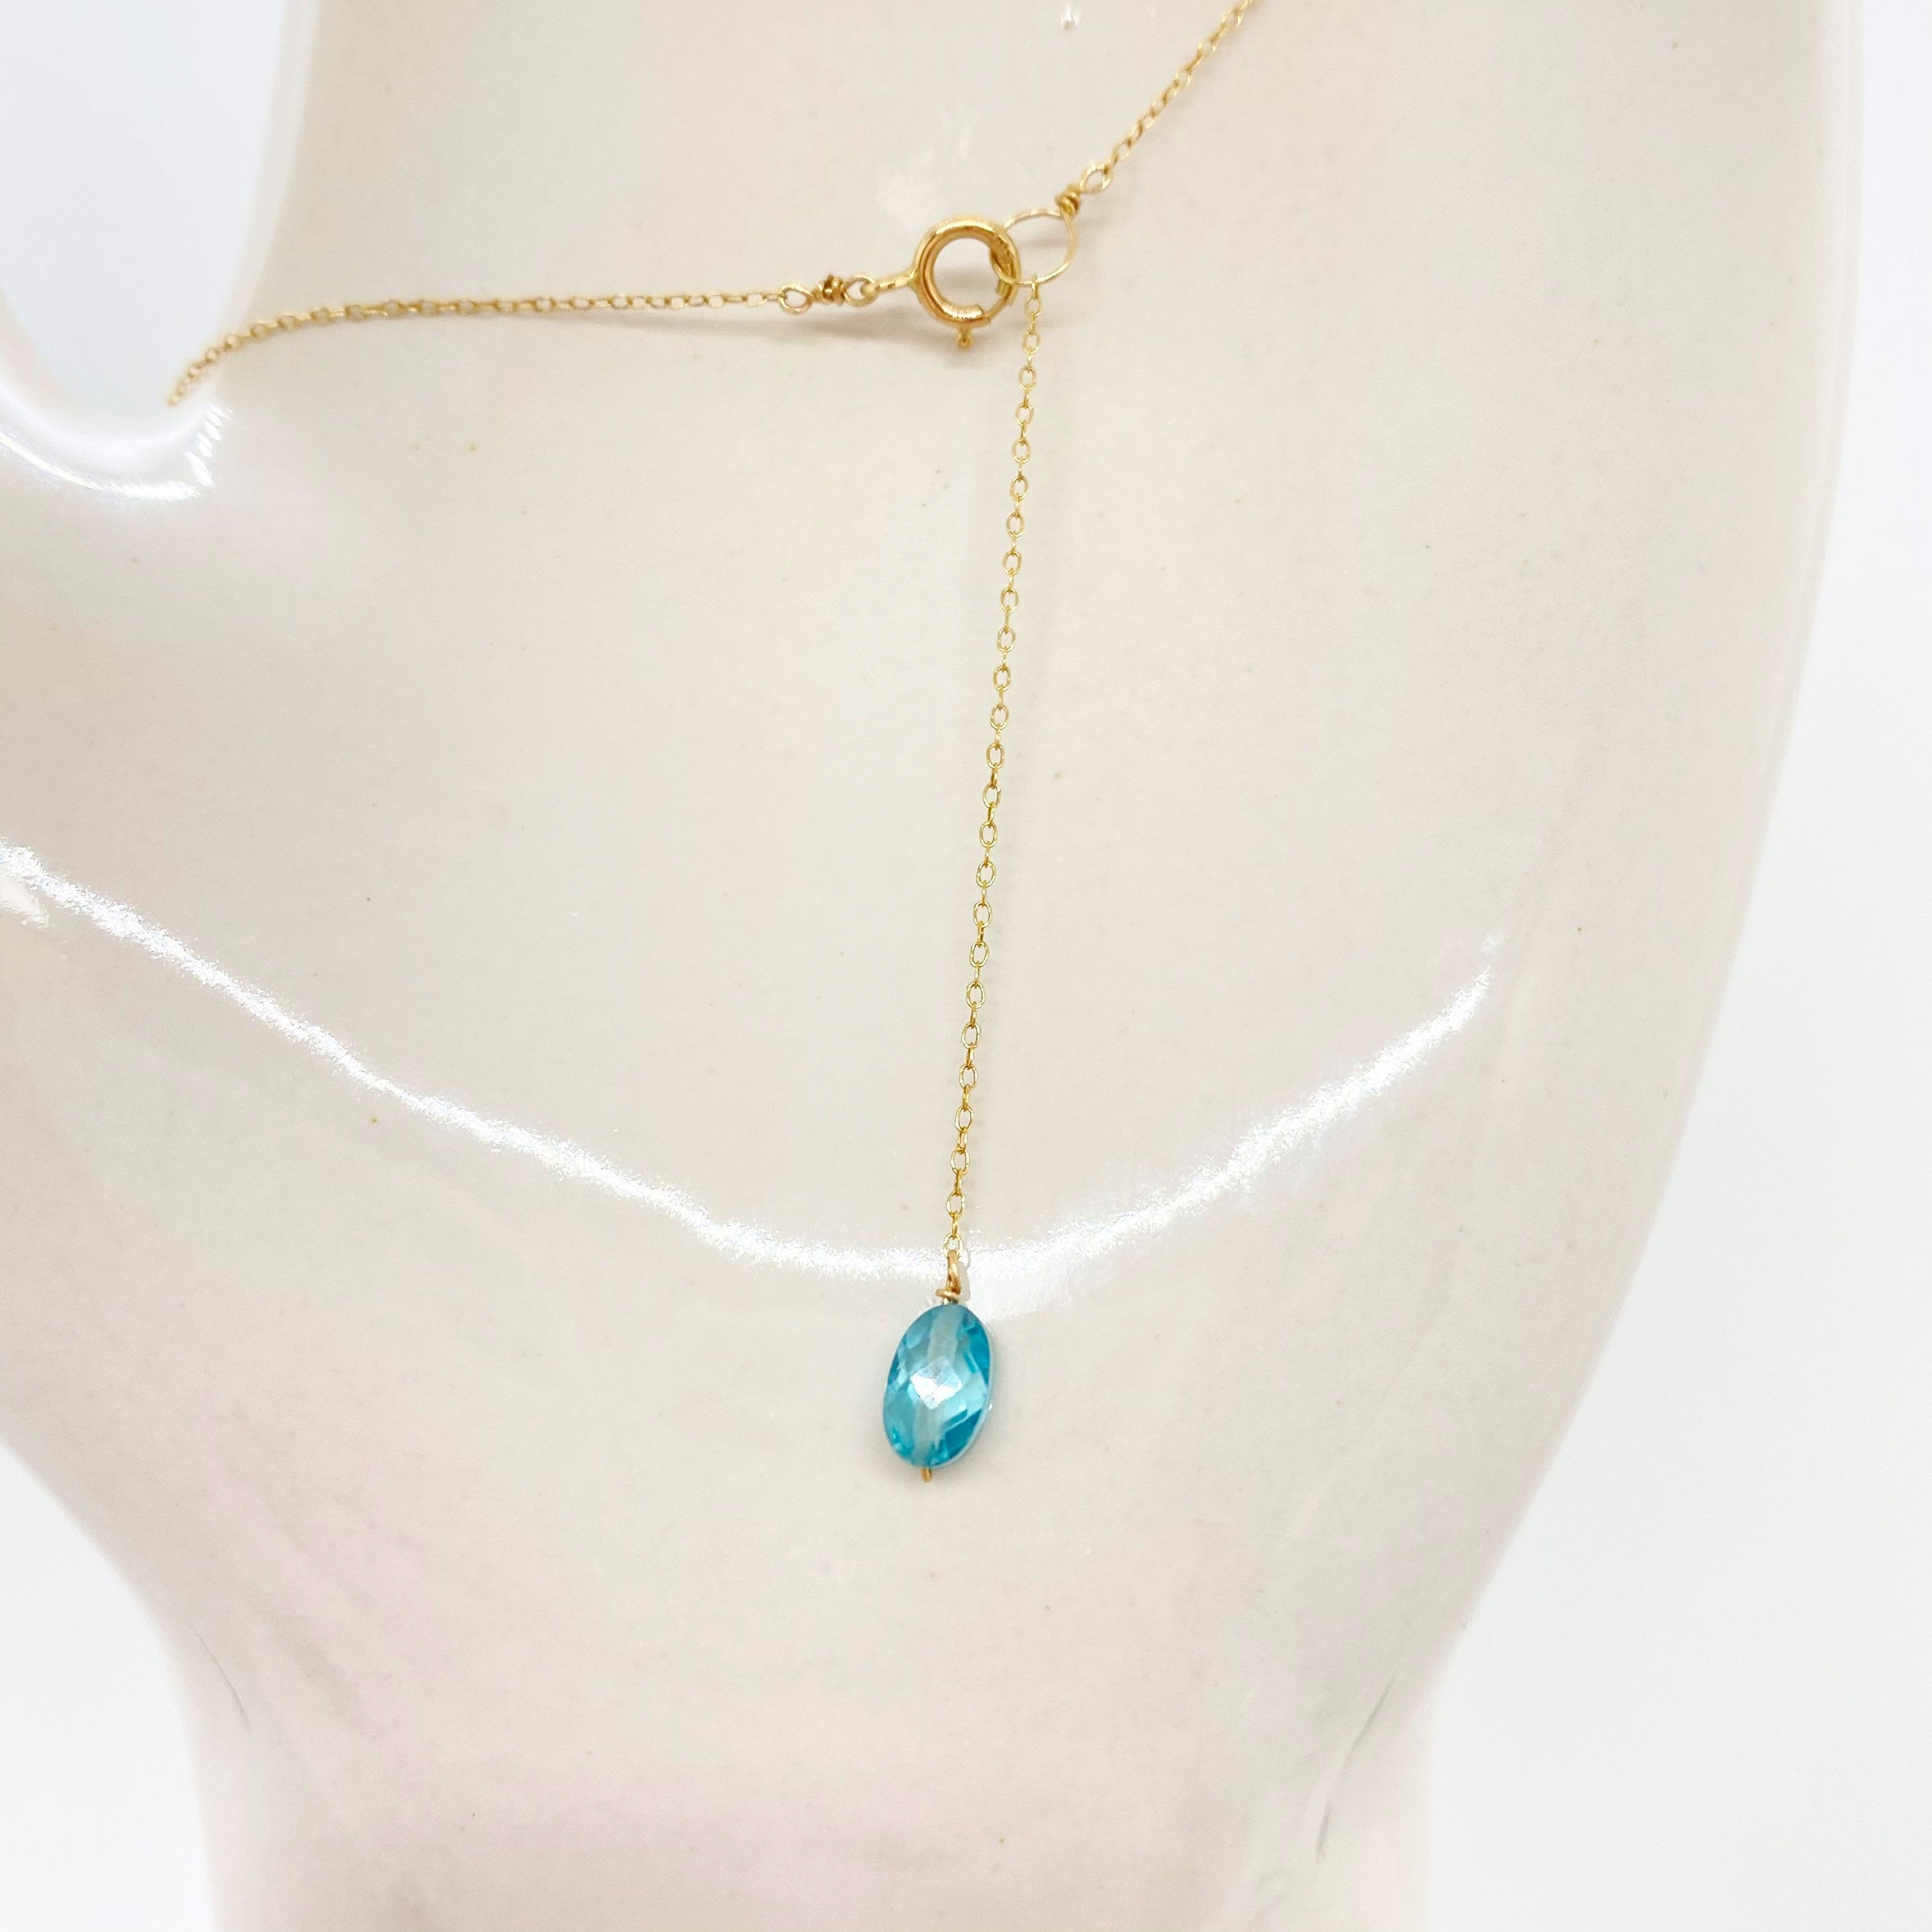 14k Gold Chain Necklace w/ Turquoise, Peridot & Antique Italian Bead